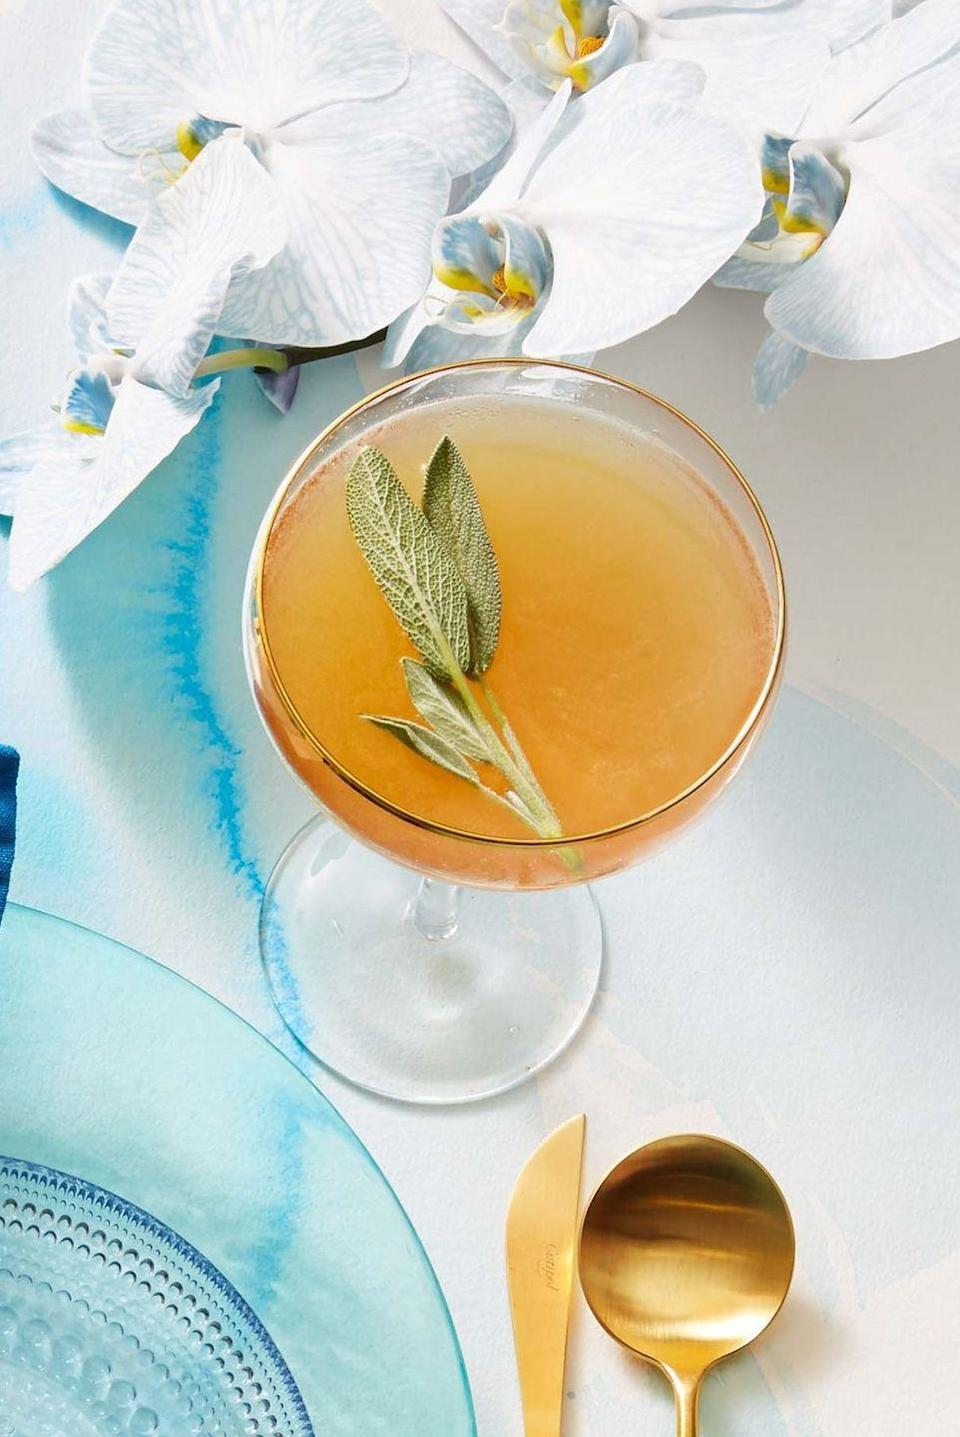 """<p>Break out the sage for this spicy cocktail! Have an absolutely haunted All Hallow's Eve with the addition of a frightfully fragrant herbal syrup.<br><br><em><a href=""""https://www.goodhousekeeping.com/food-recipes/a36890585/ginger-sage-rye-cocktail-recipe/"""" rel=""""nofollow noopener"""" target=""""_blank"""" data-ylk=""""slk:Get the recipe for Ginger-Sage Rye Cocktail »"""" class=""""link rapid-noclick-resp"""">Get the recipe for Ginger-Sage Rye Cocktail »</a></em><br></p>"""